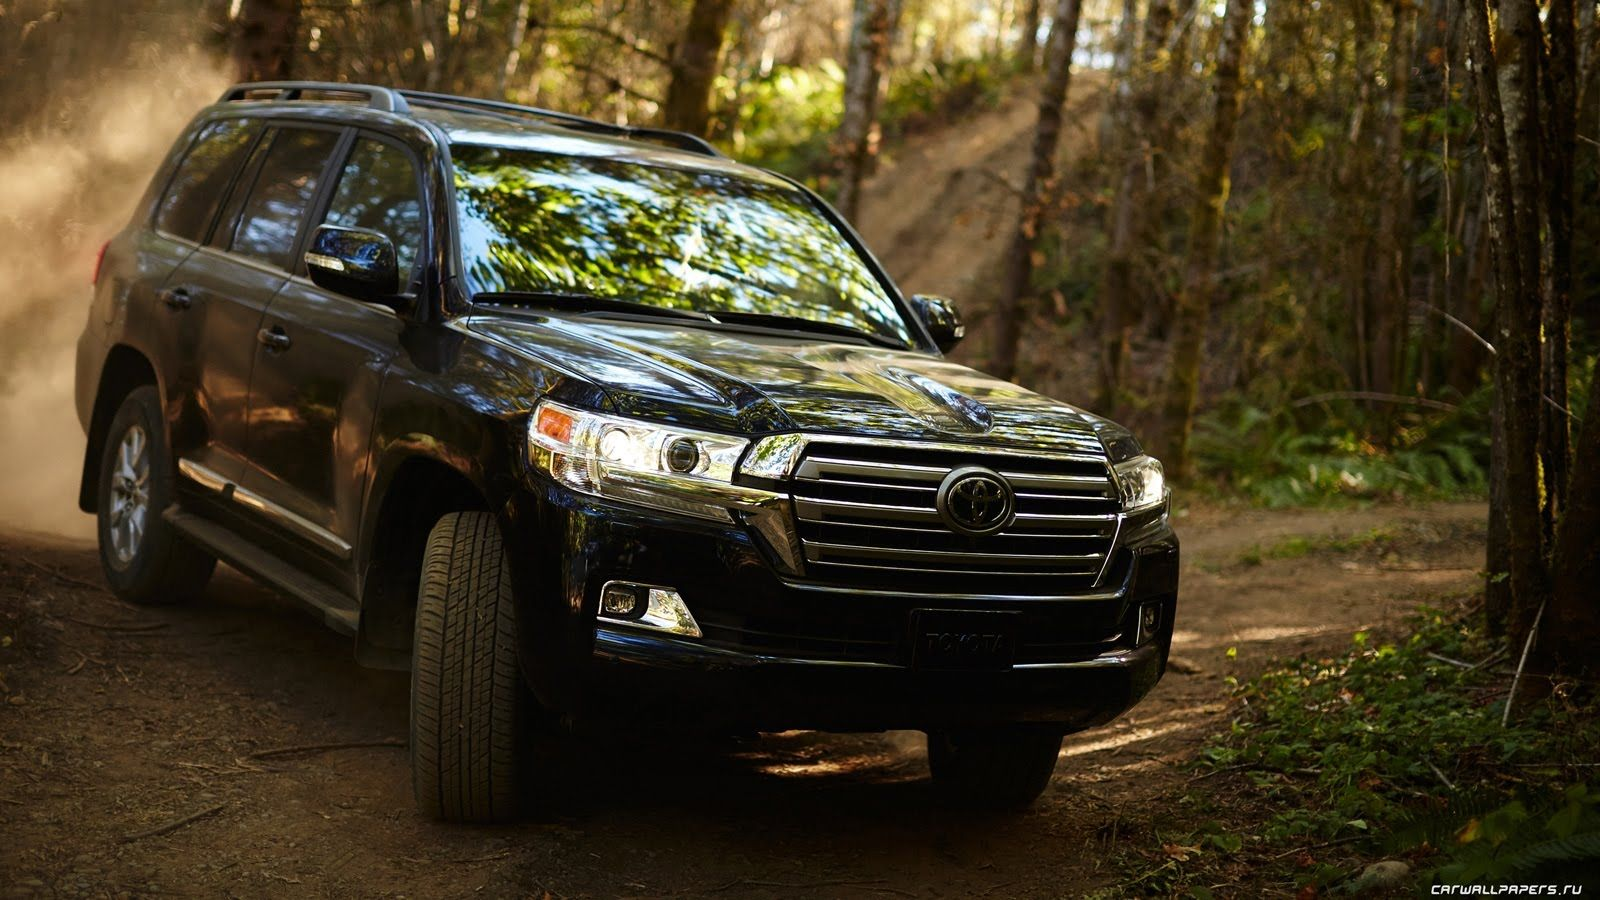 2018 Toyota Land Cruiser Diesel Engine Future Cars Pictures